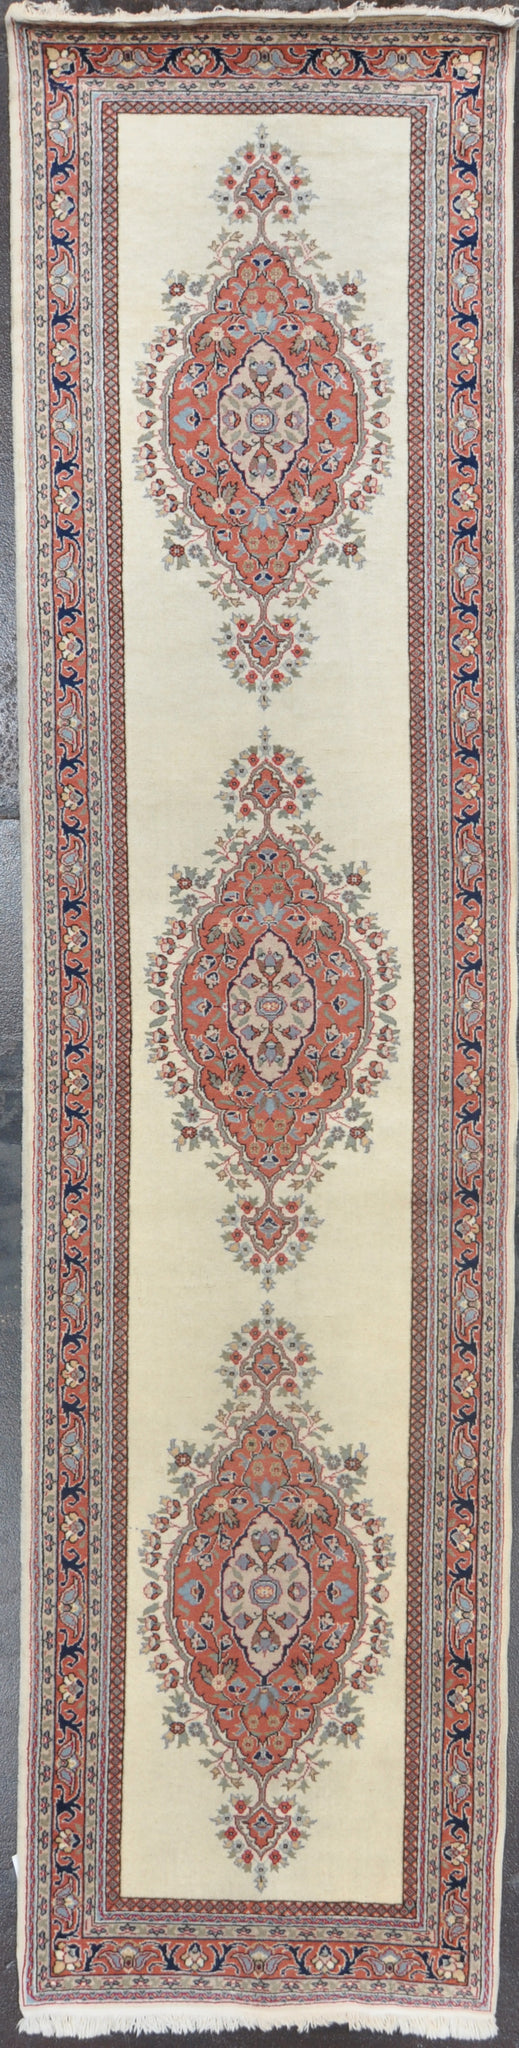 3.1x12.6 Persian tabiz des wool #91587